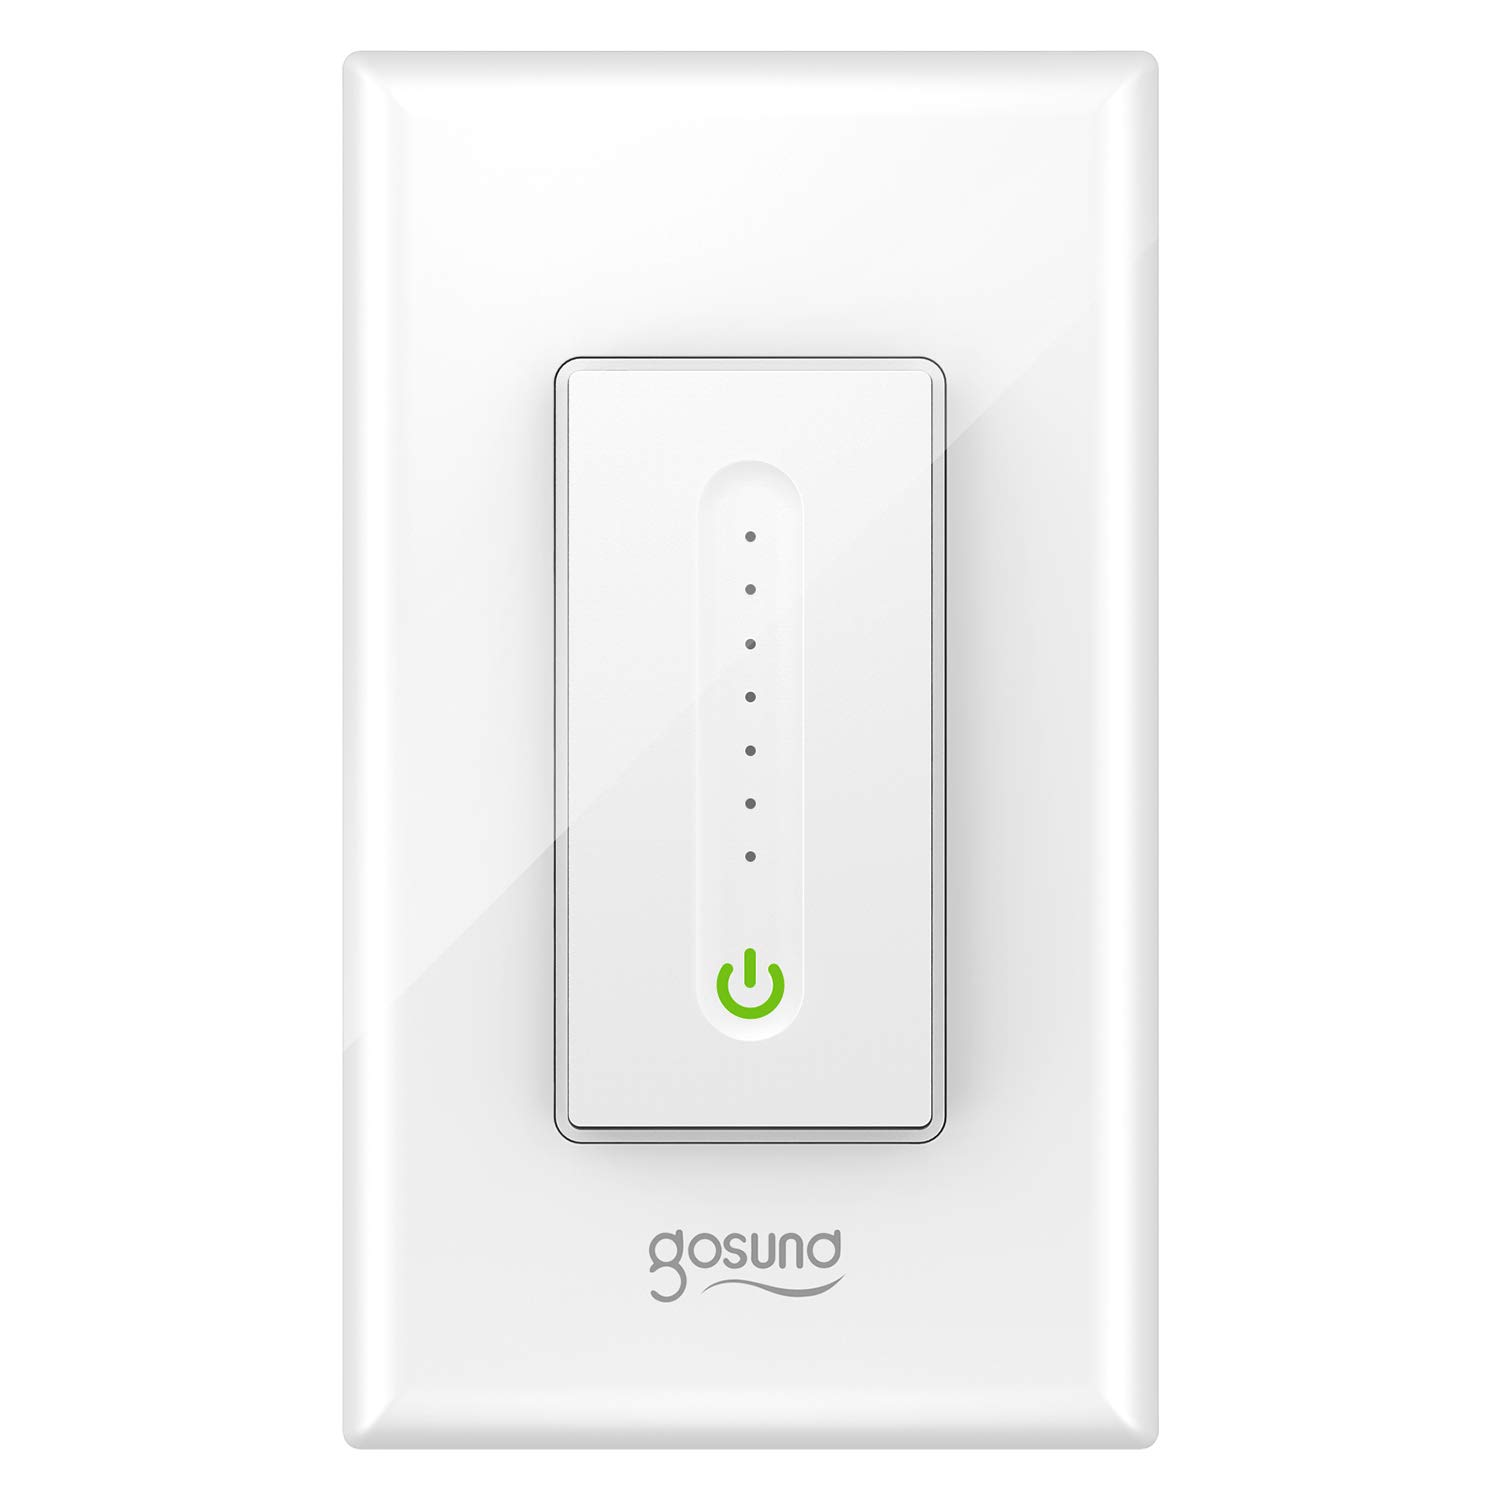 Gosund Smart Dimmer Light Switch